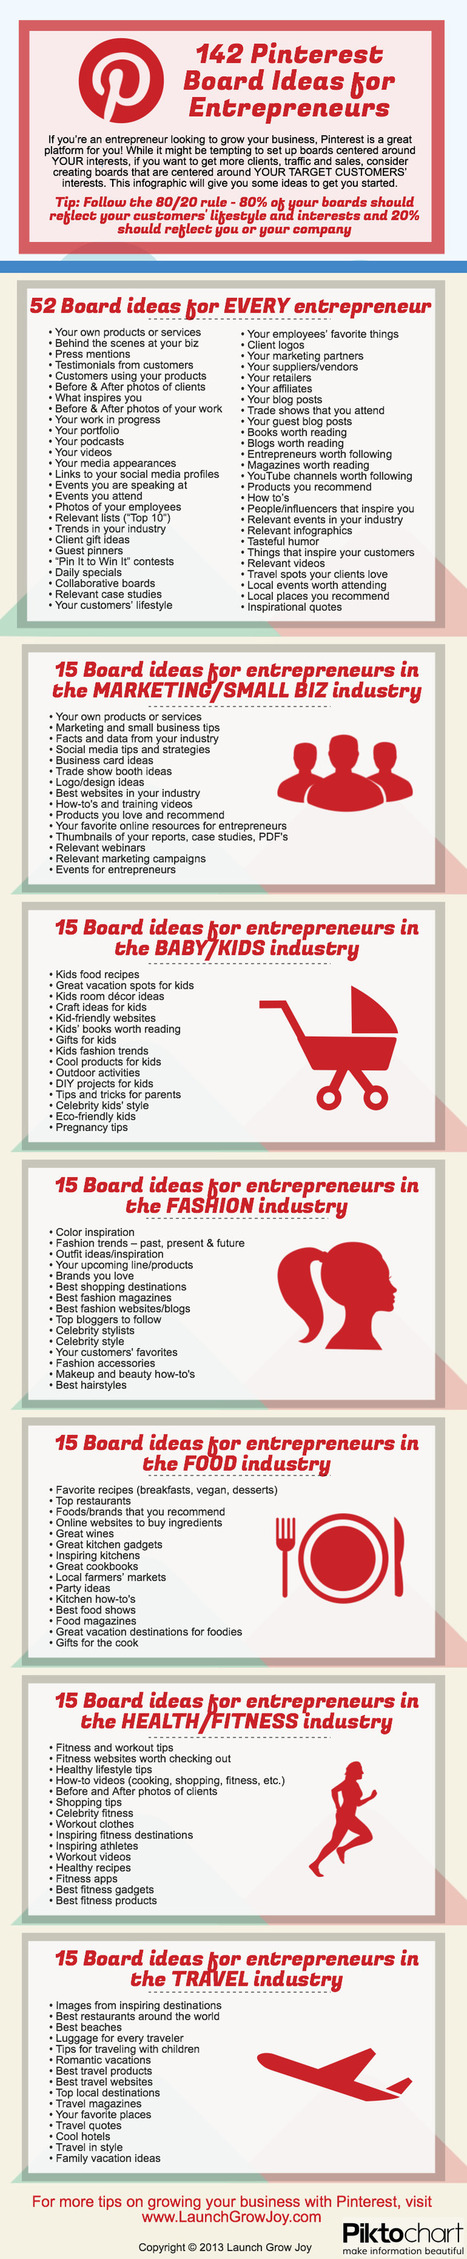 142 Pinterest Board Ideas for Your Business - #Infographic | Social mobile and local marketing | Scoop.it